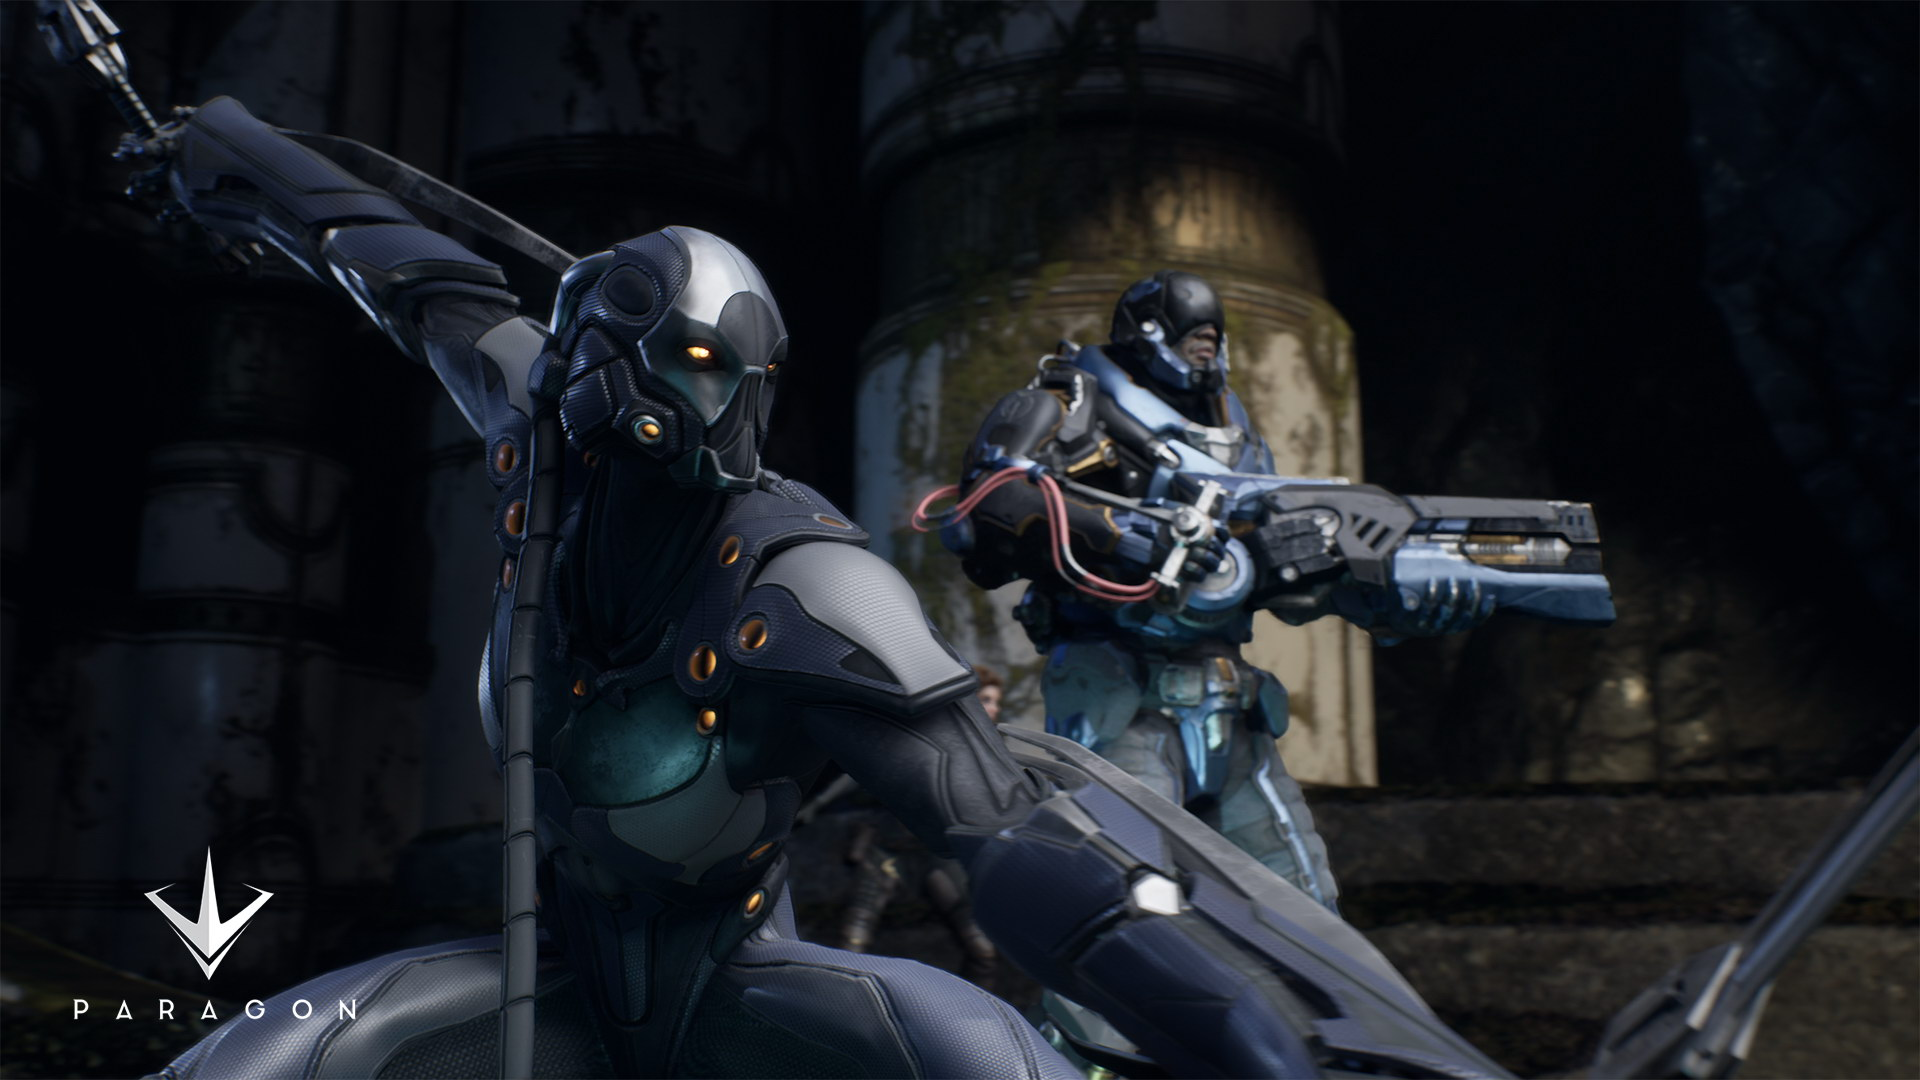 epic games paragon alpha key